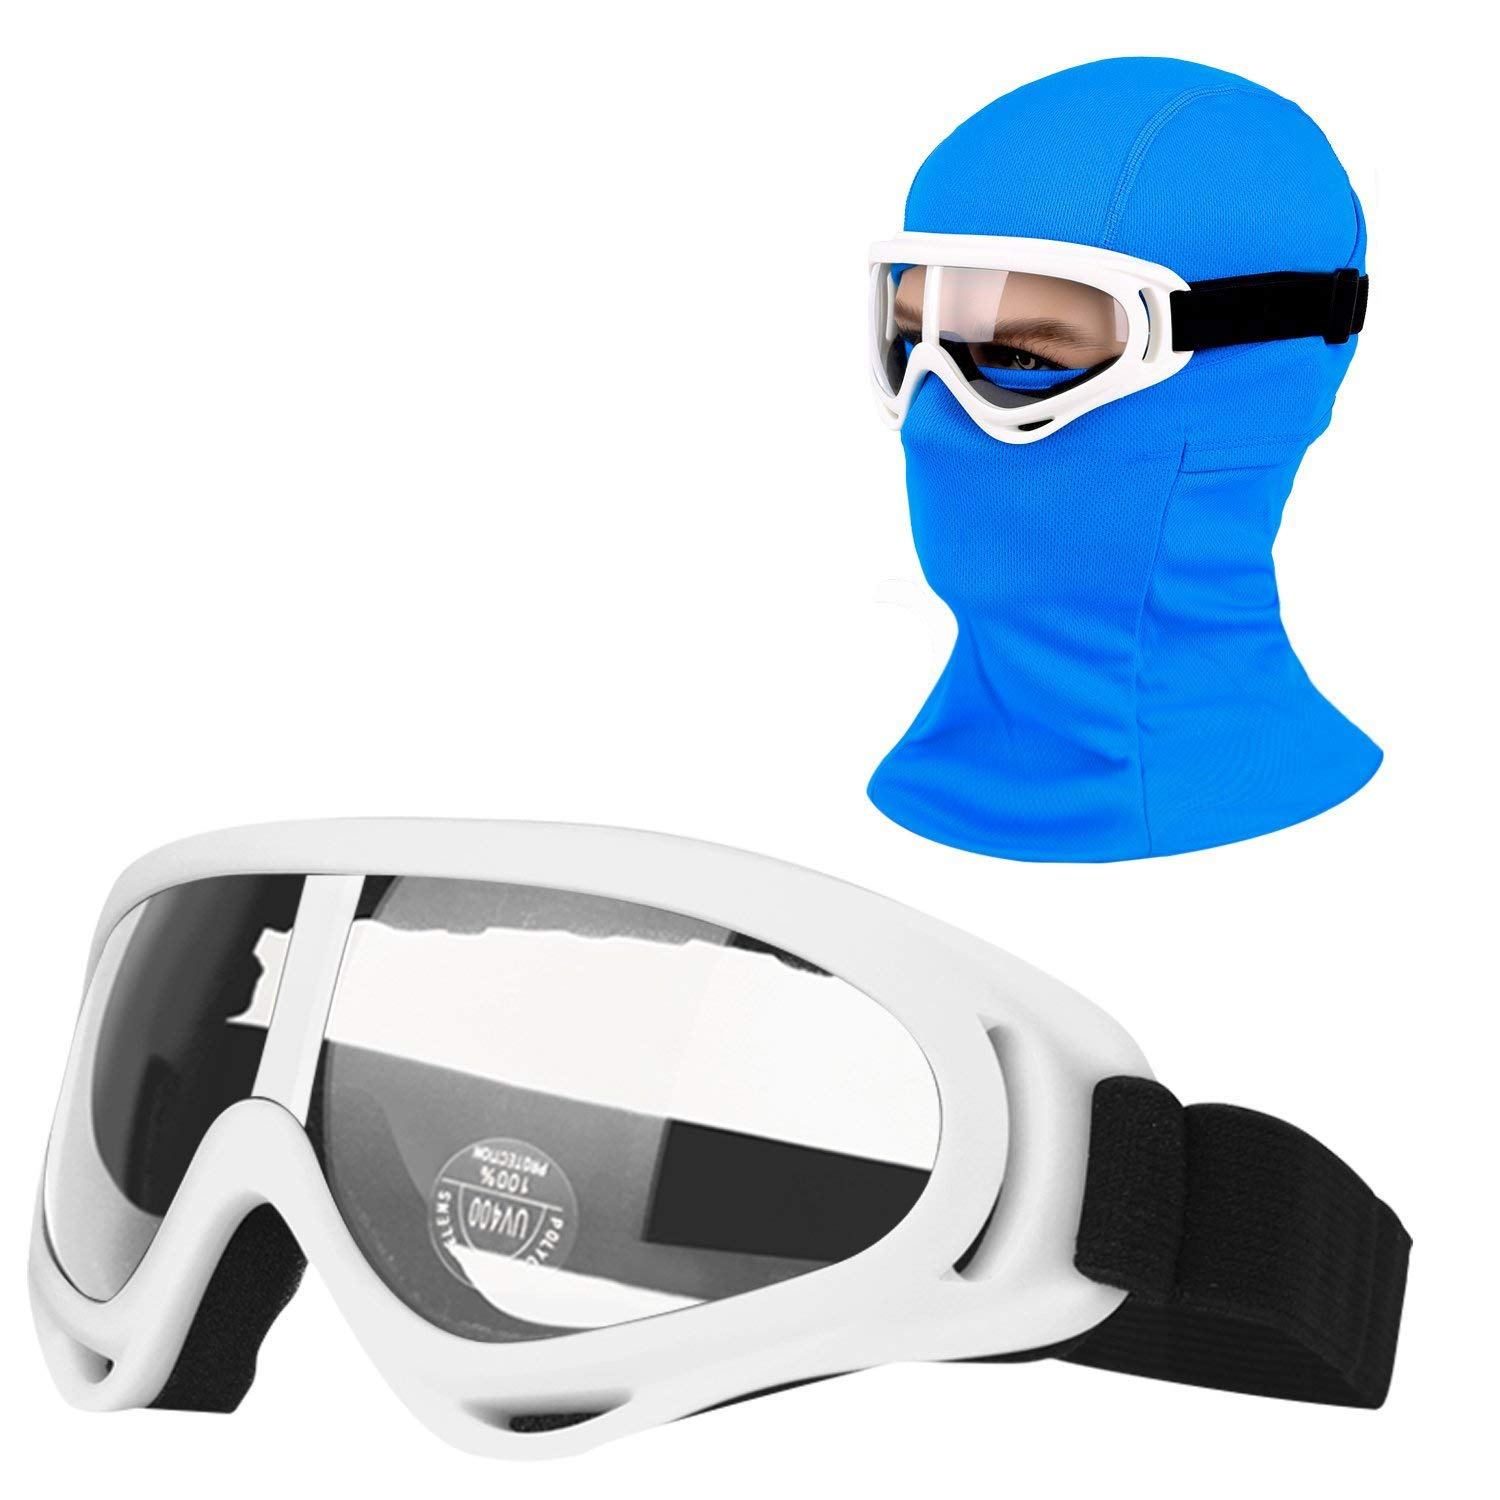 COOLOO Balaclava & Ski Goggles Sets, Ultralight Balaclava Face Mask Windproof Ski Hood + UV400 Protection Anti-Fog Ski Goggles Cycling, Biking, Ski Snowboard fit Kids Men & Women Black